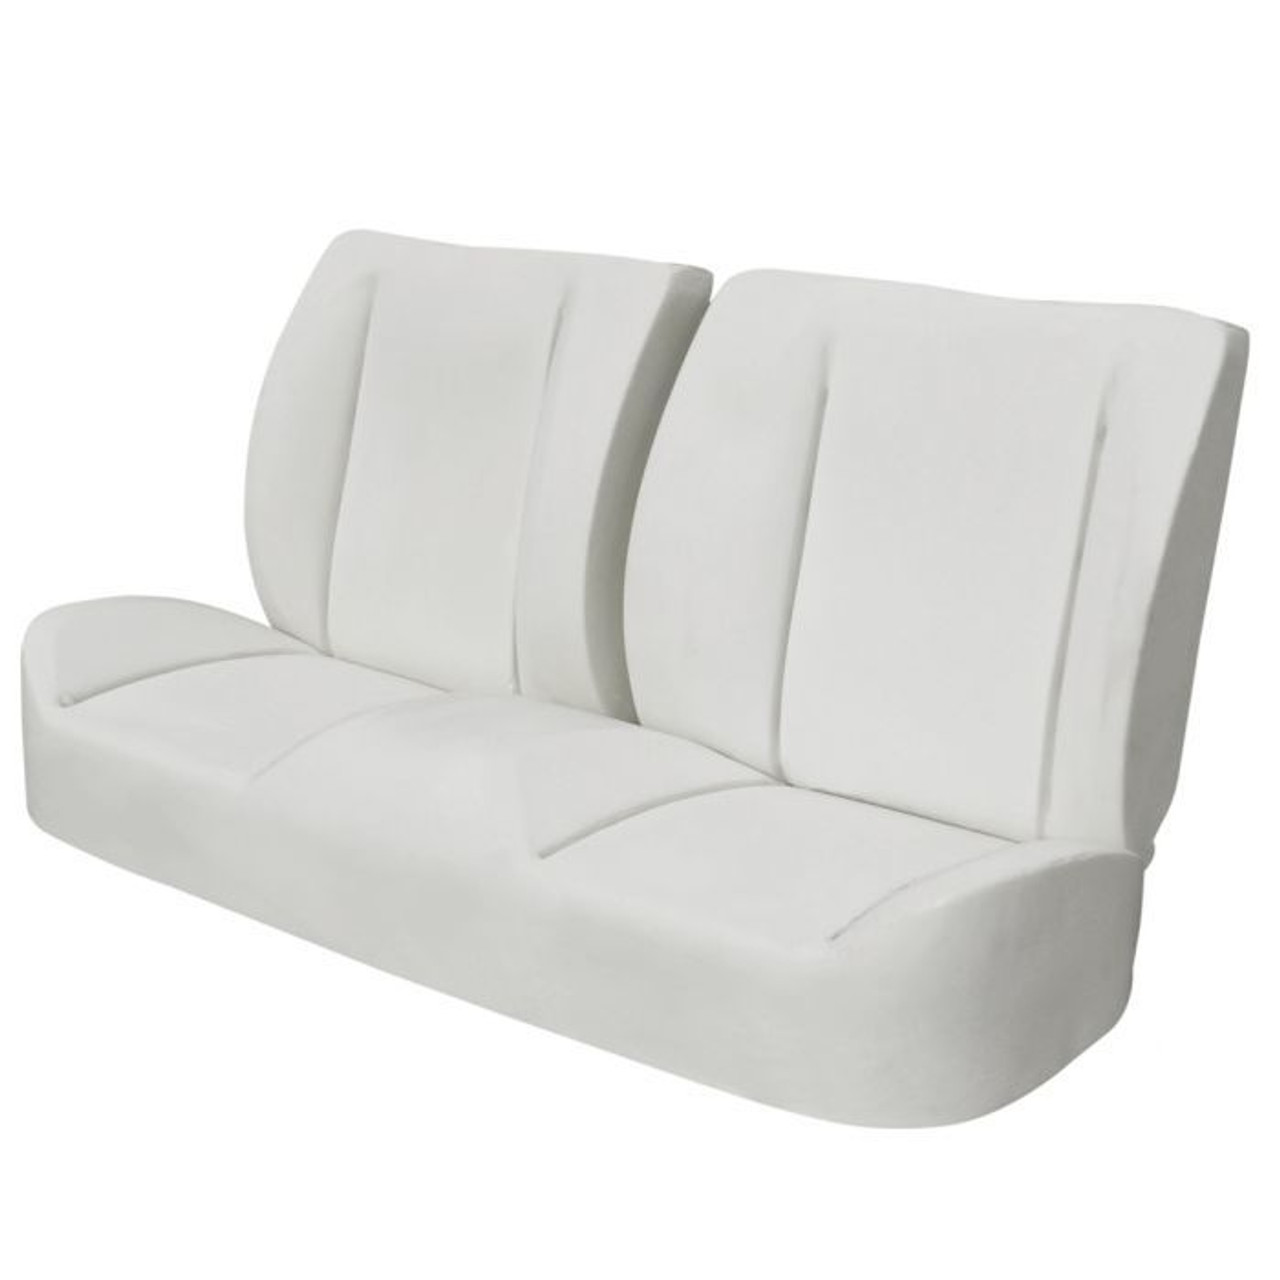 1971-72 Front Bench Seat Foam for TMI Sport Seat,